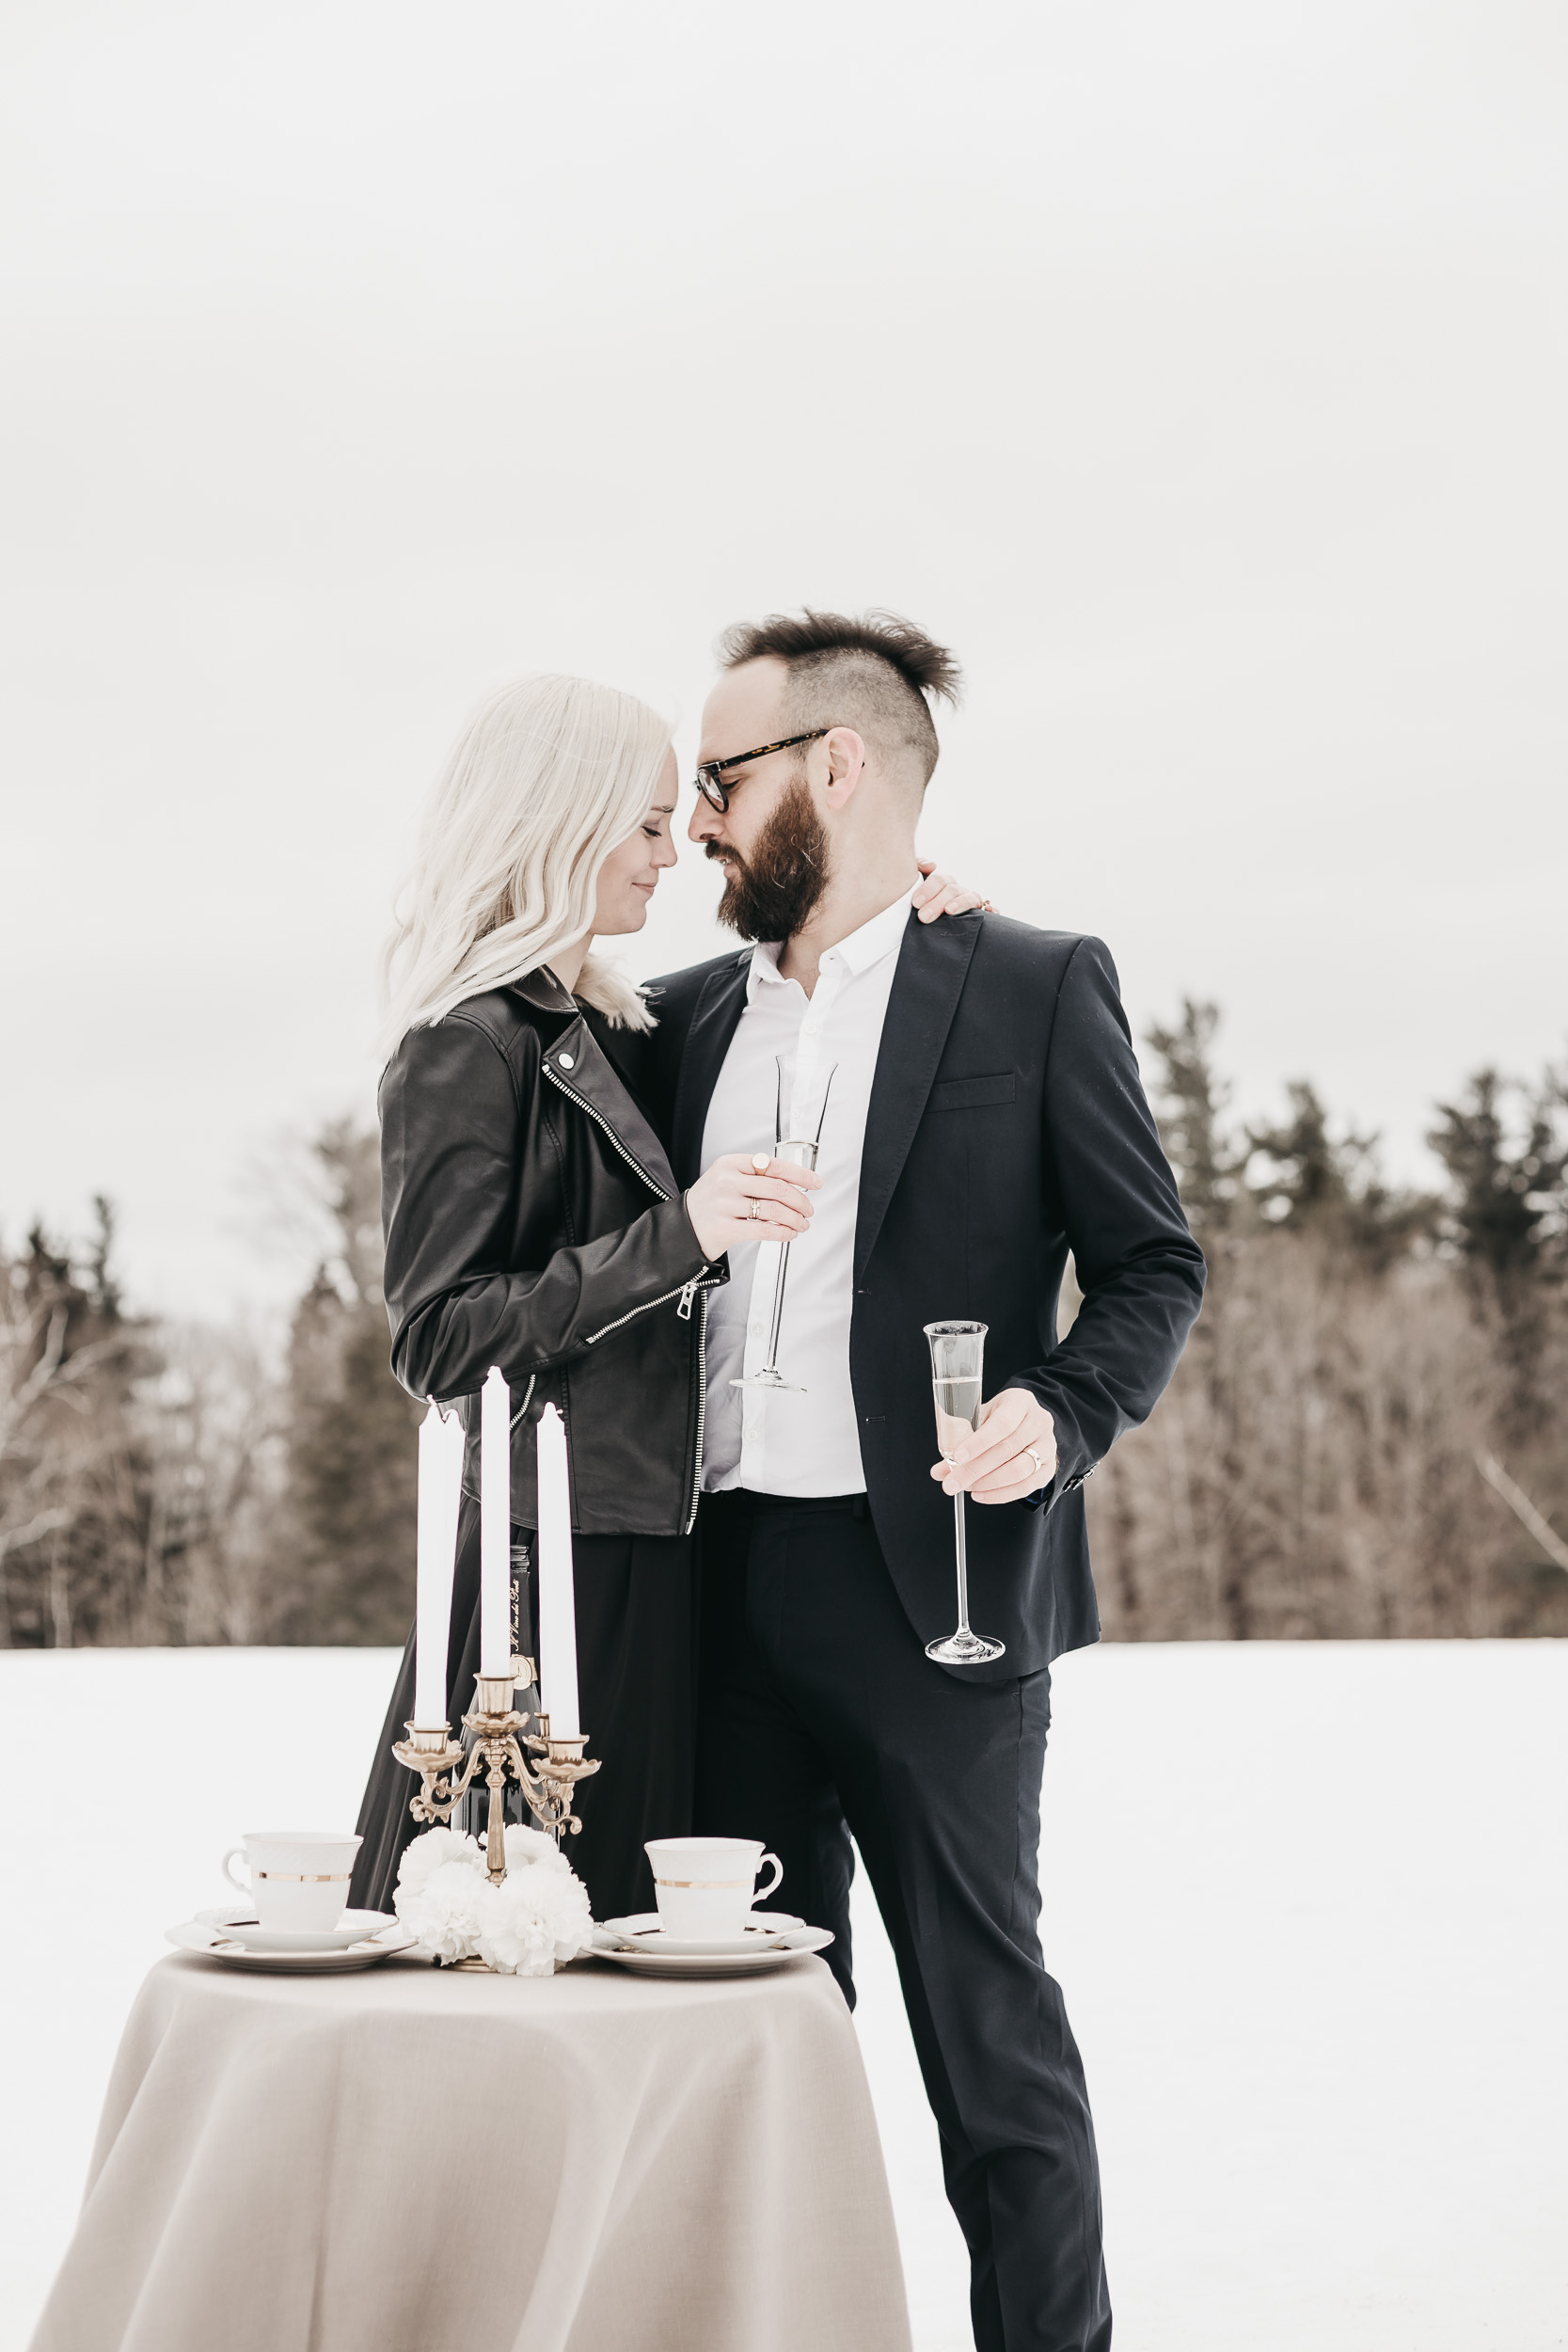 Ottawa-Elopement-Engagement-Photographer-128.jpg